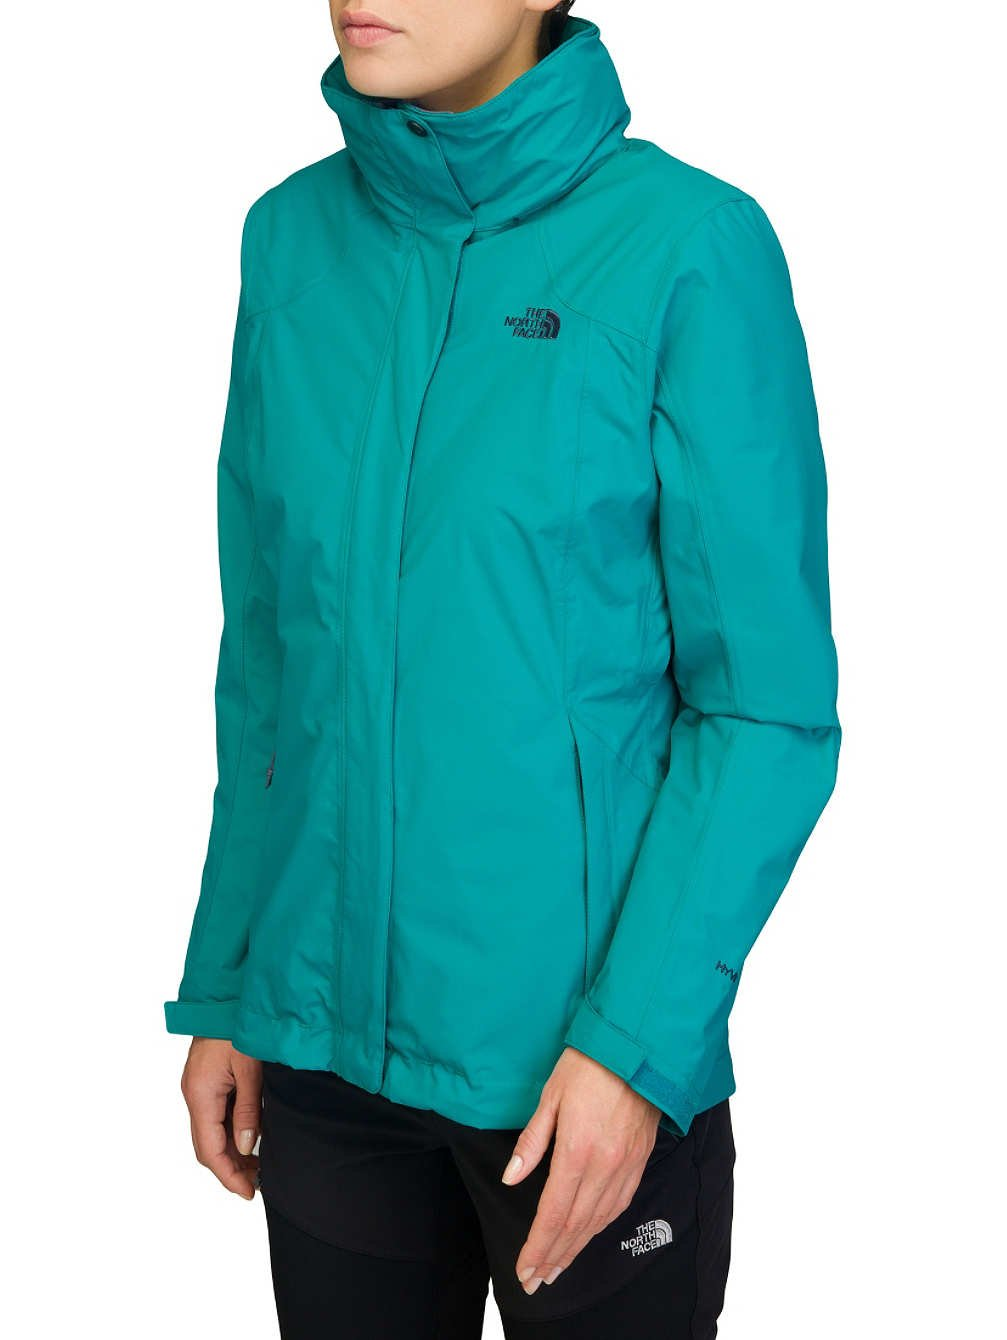 THE NORTH FACE Damen Jacke Evolution II Triclimate